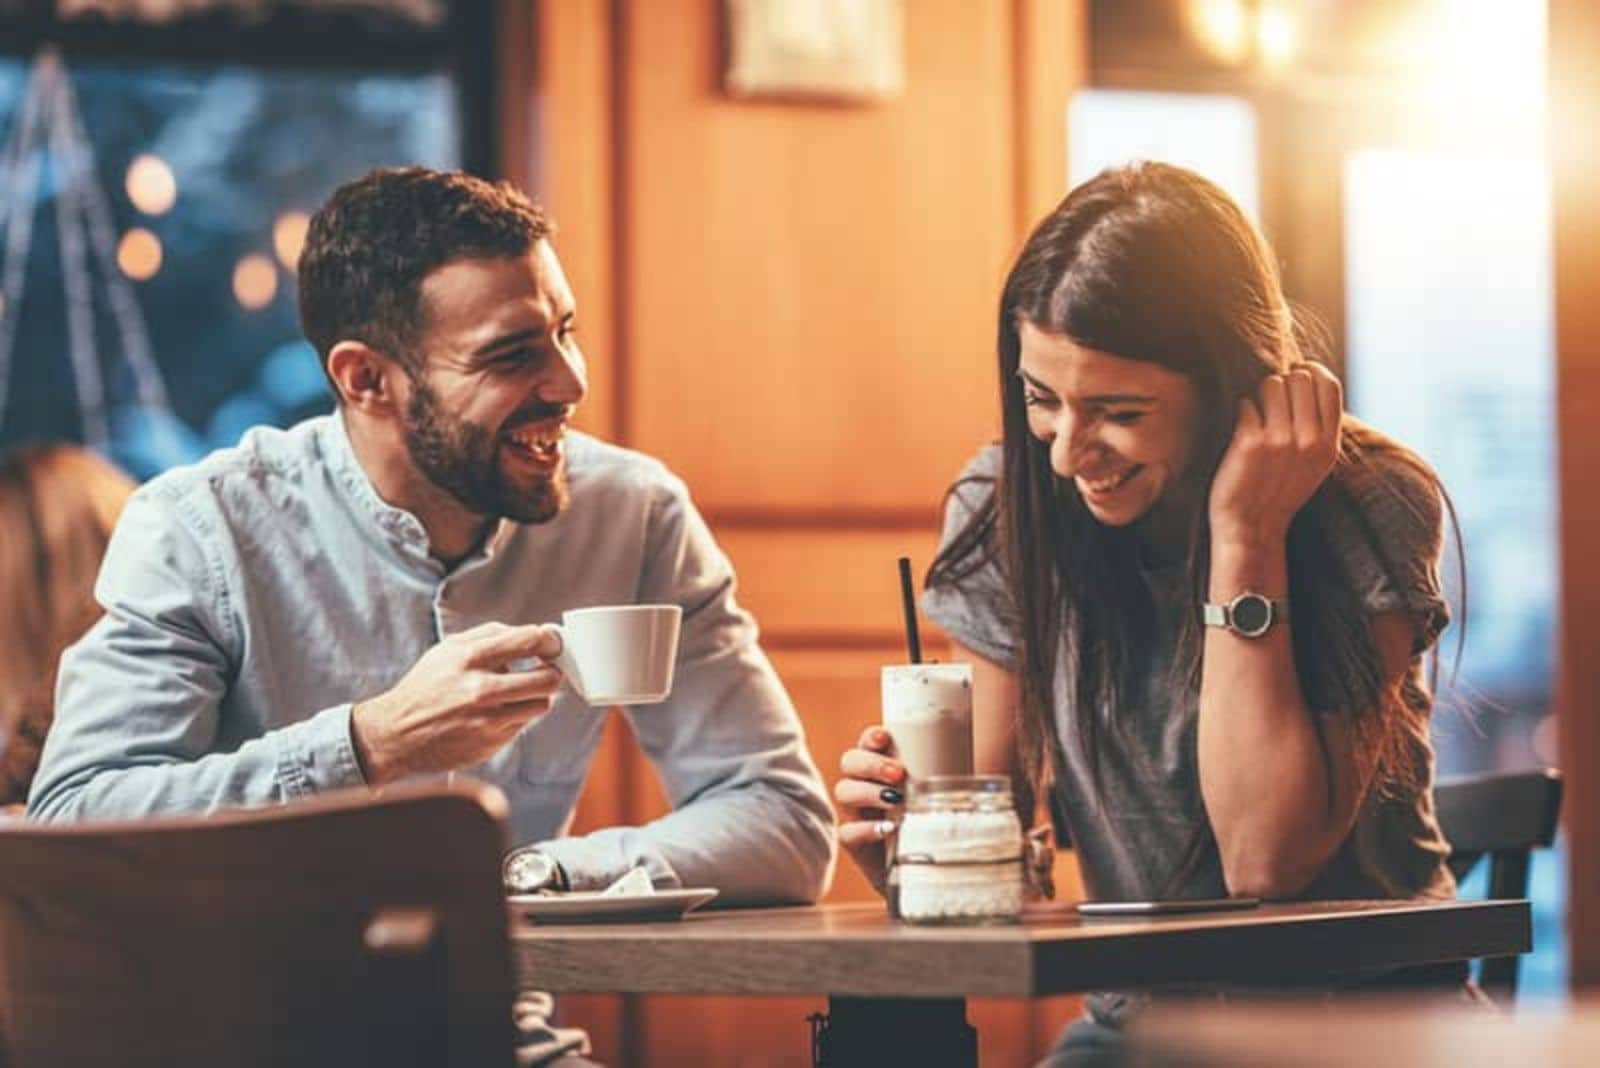 a man and a woman laughing and drinking coffee